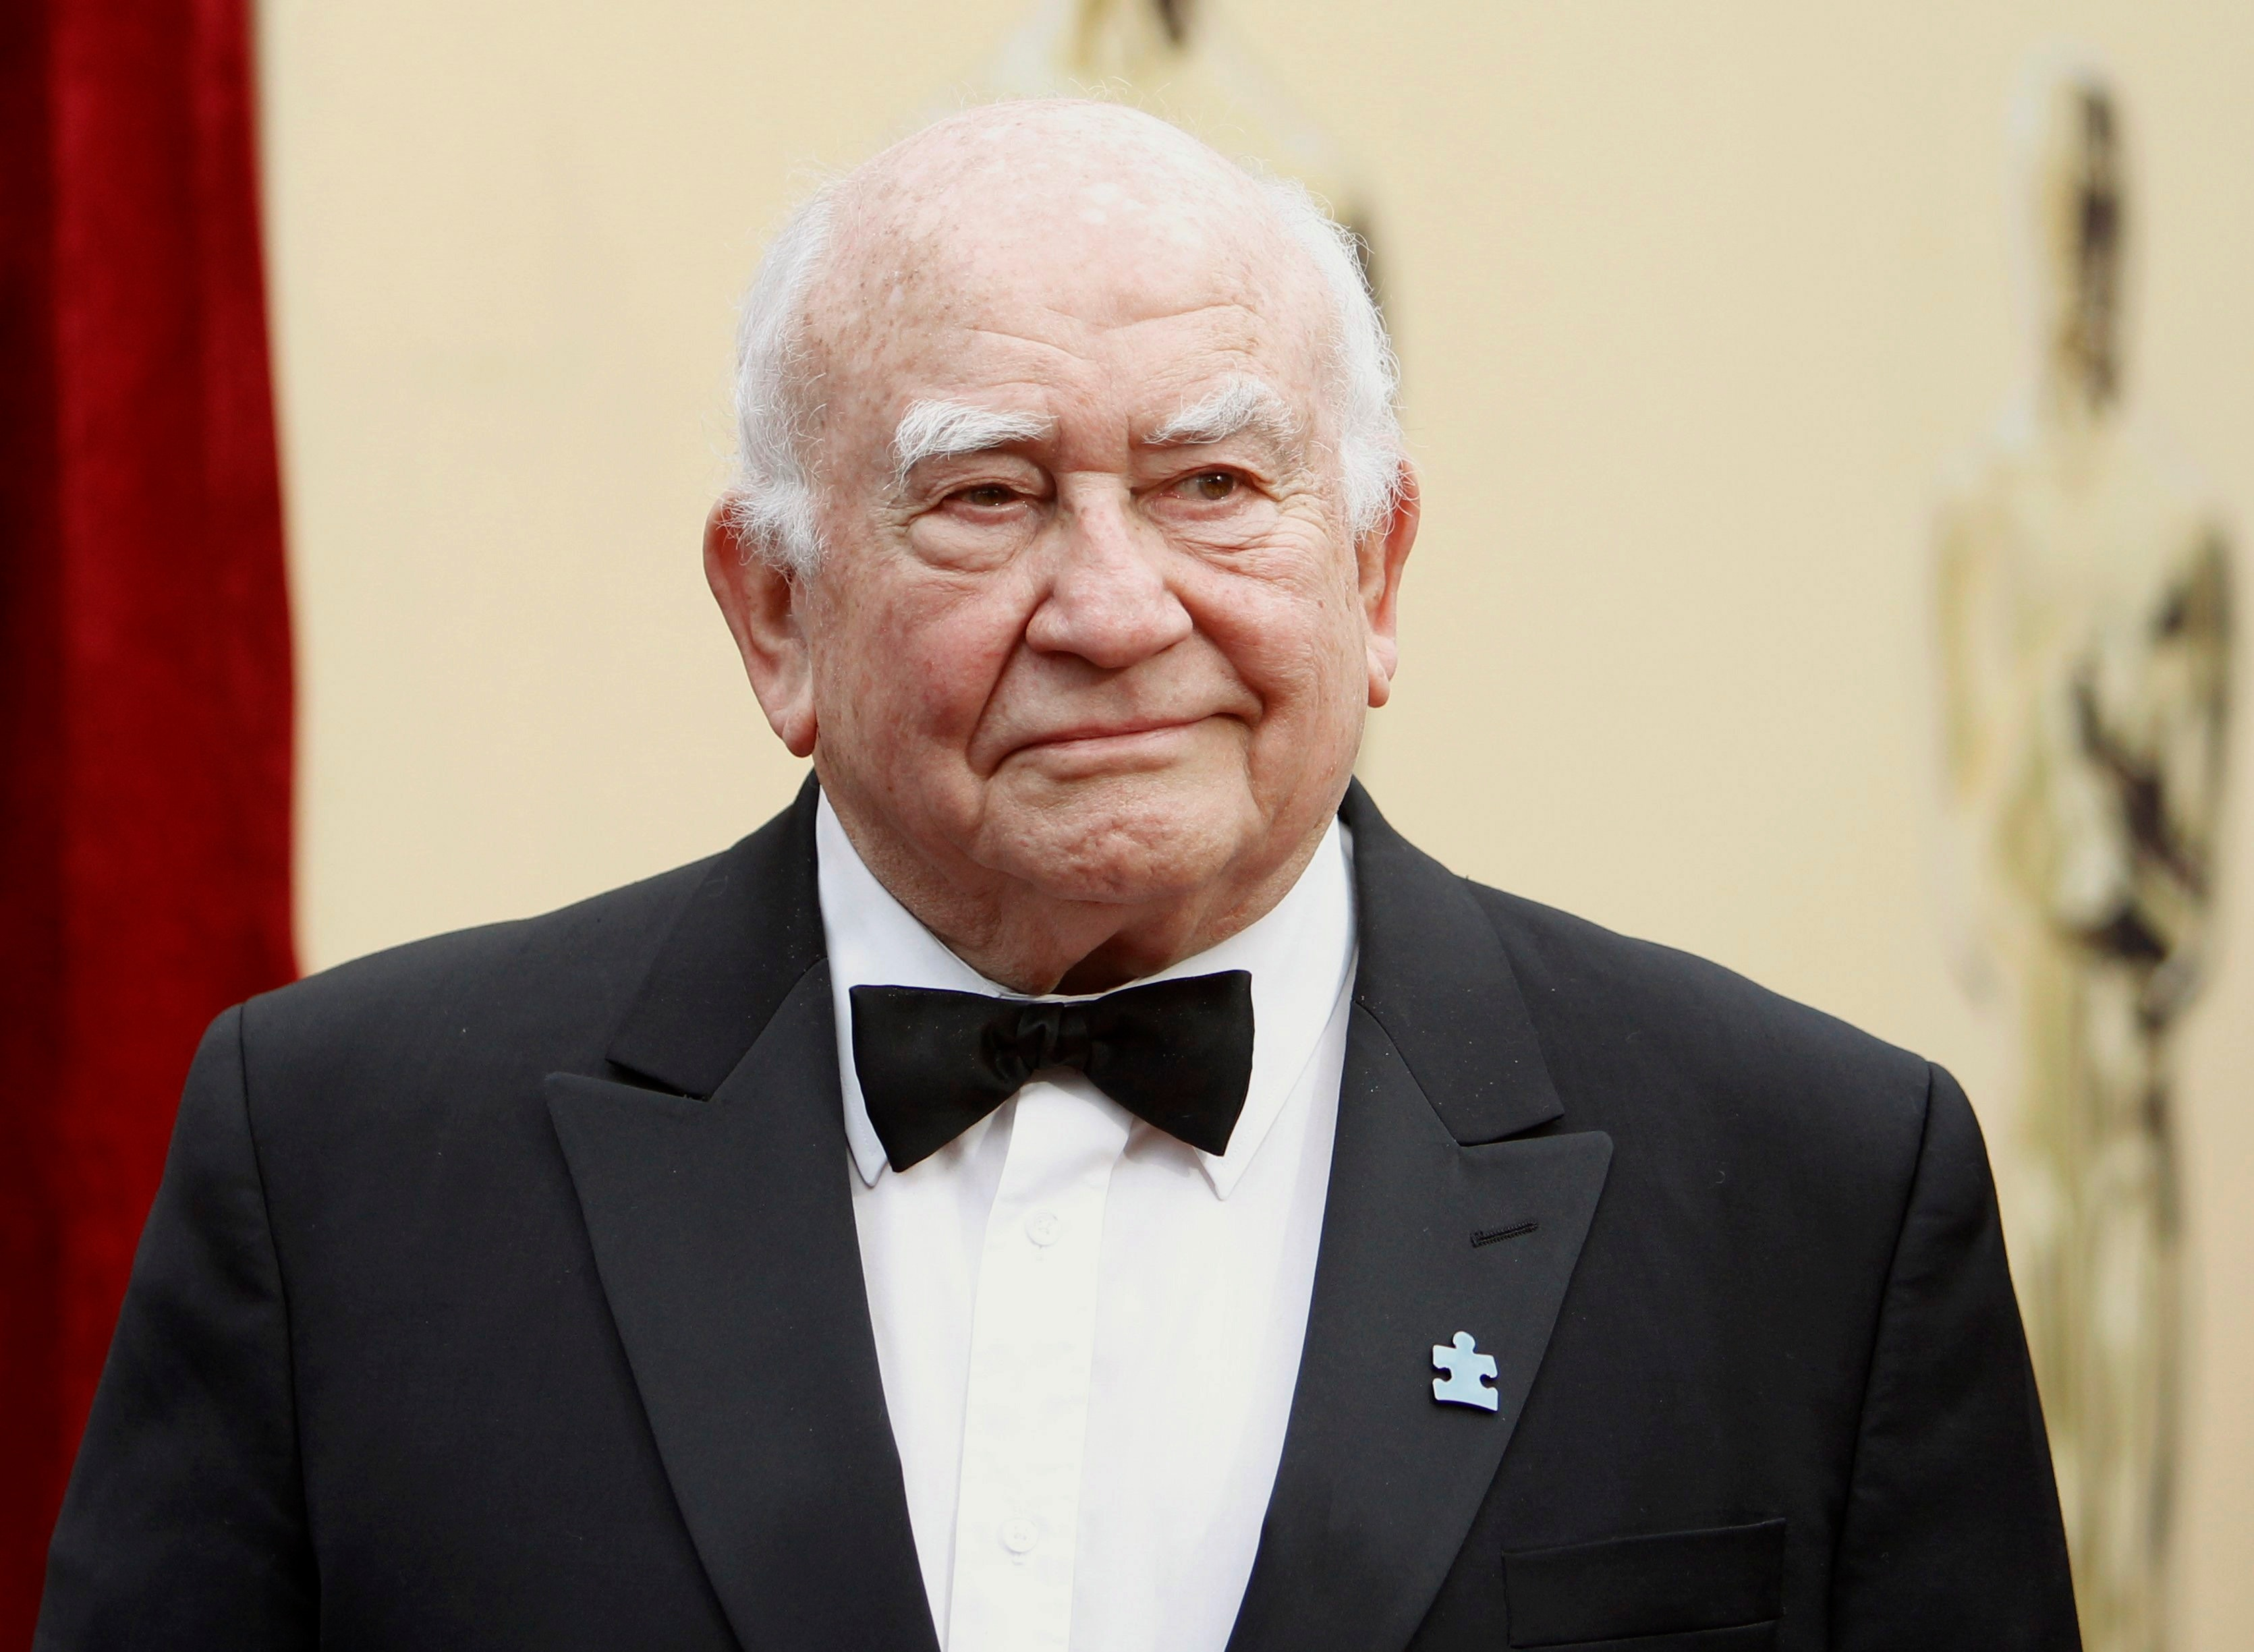 edward asner net worth